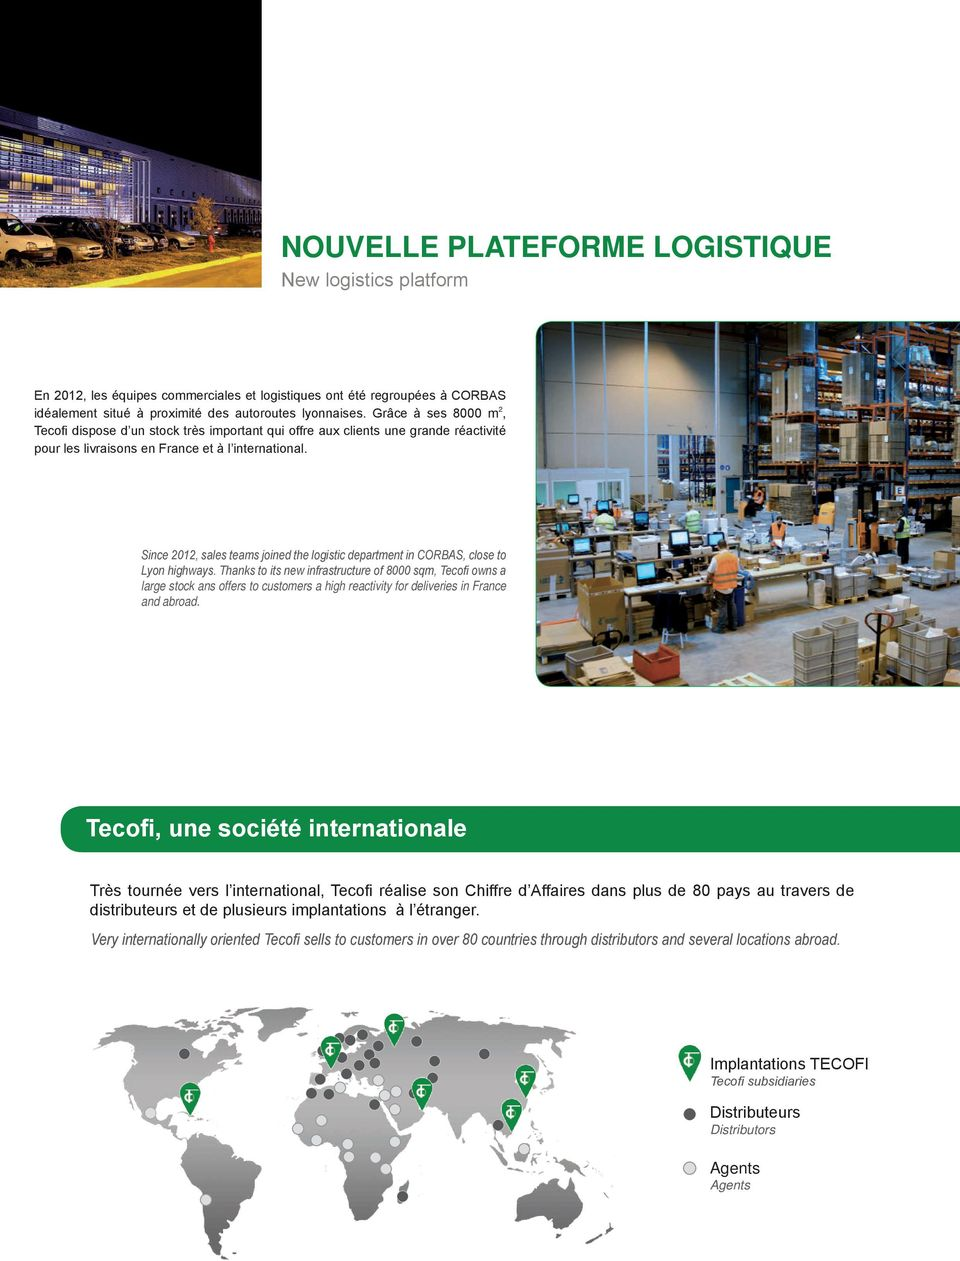 Since 2012, sales teams joined the logistic department in CORBAS, close to Lyon highways.